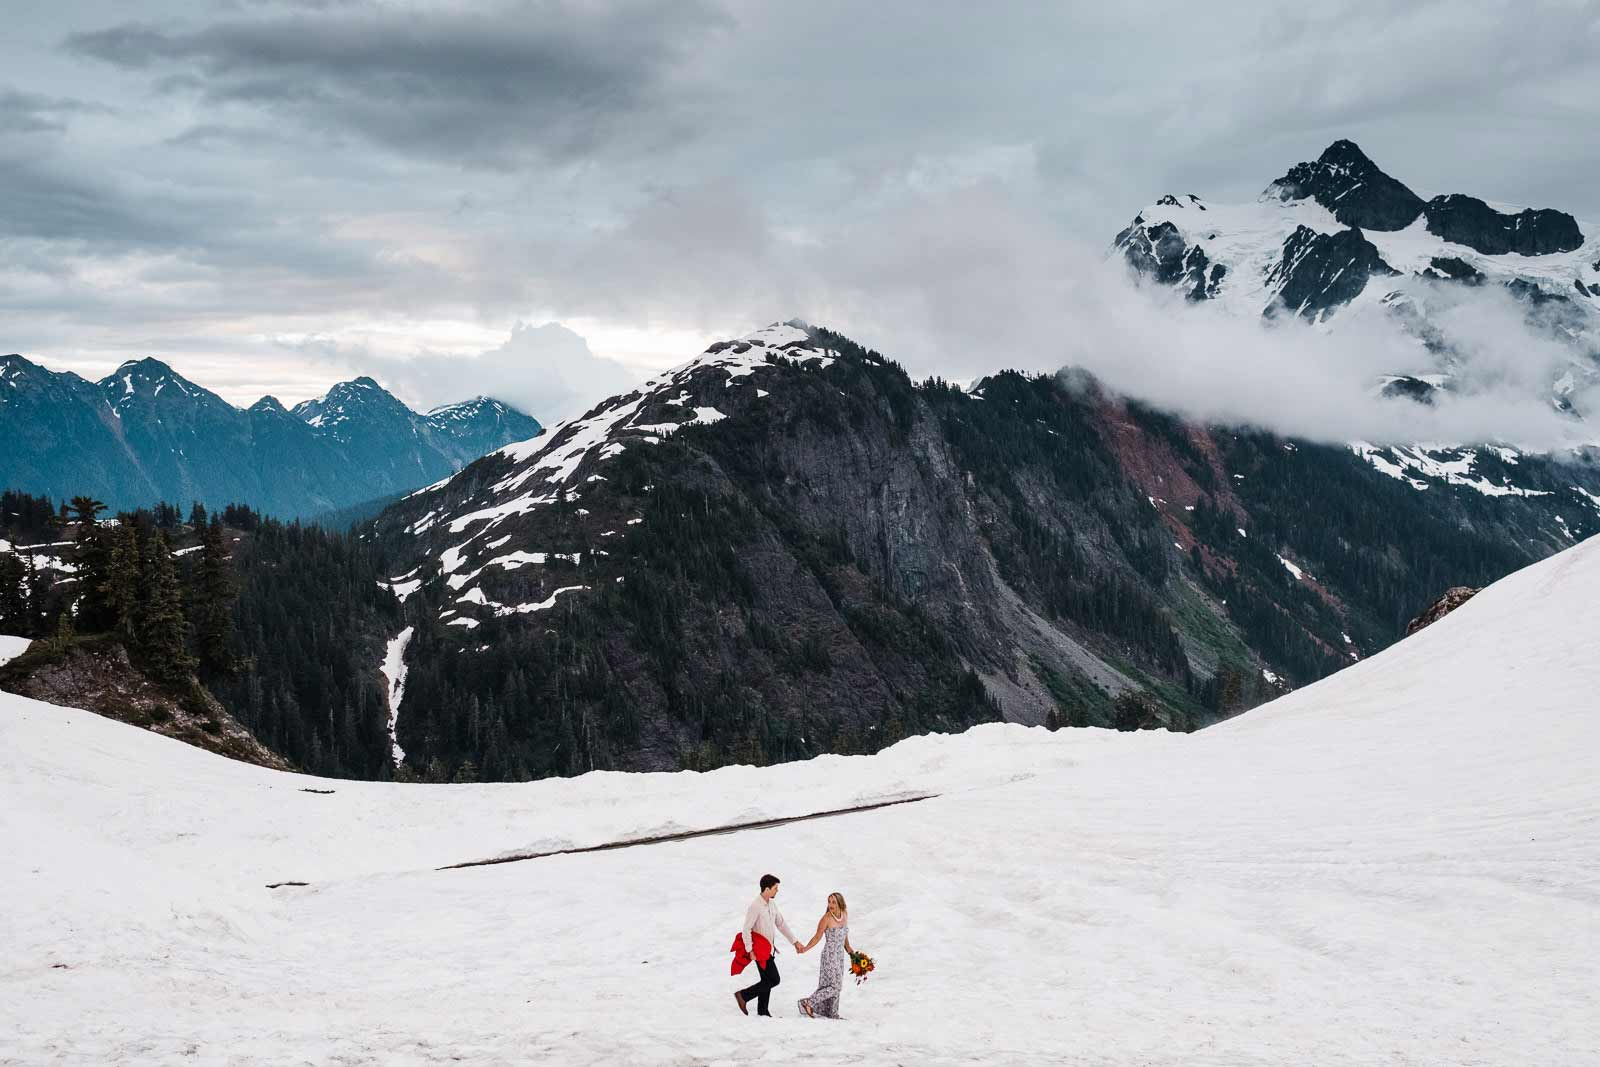 Engagement adventure photography session on Mt. baker in Washington near Seattle.